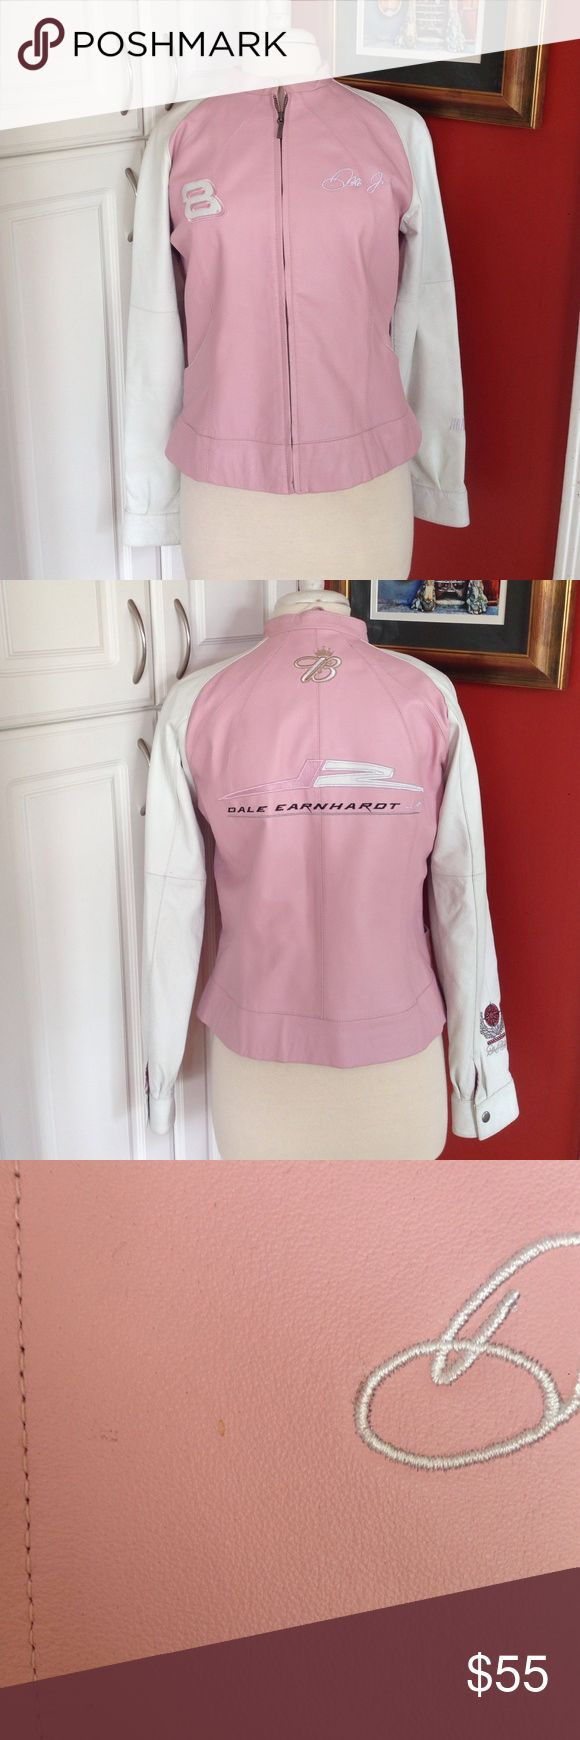 """Wilsons Leather Dale Earnhart Jr. Jacket Wilsons Leather Dale Earnhart Jr. NASCAR jacket, pink and white. Size medium. Measurements: shoulders: 16.5"""", bust: 19"""", length: 23"""", sleeve length: 28"""". Features: two front pockets, lined, snap sleeves, zipper closure. Pre-loved, some superficial stains (I believe it can easily be cleaned by a professional). Wilsons Leather Jackets & Coats"""